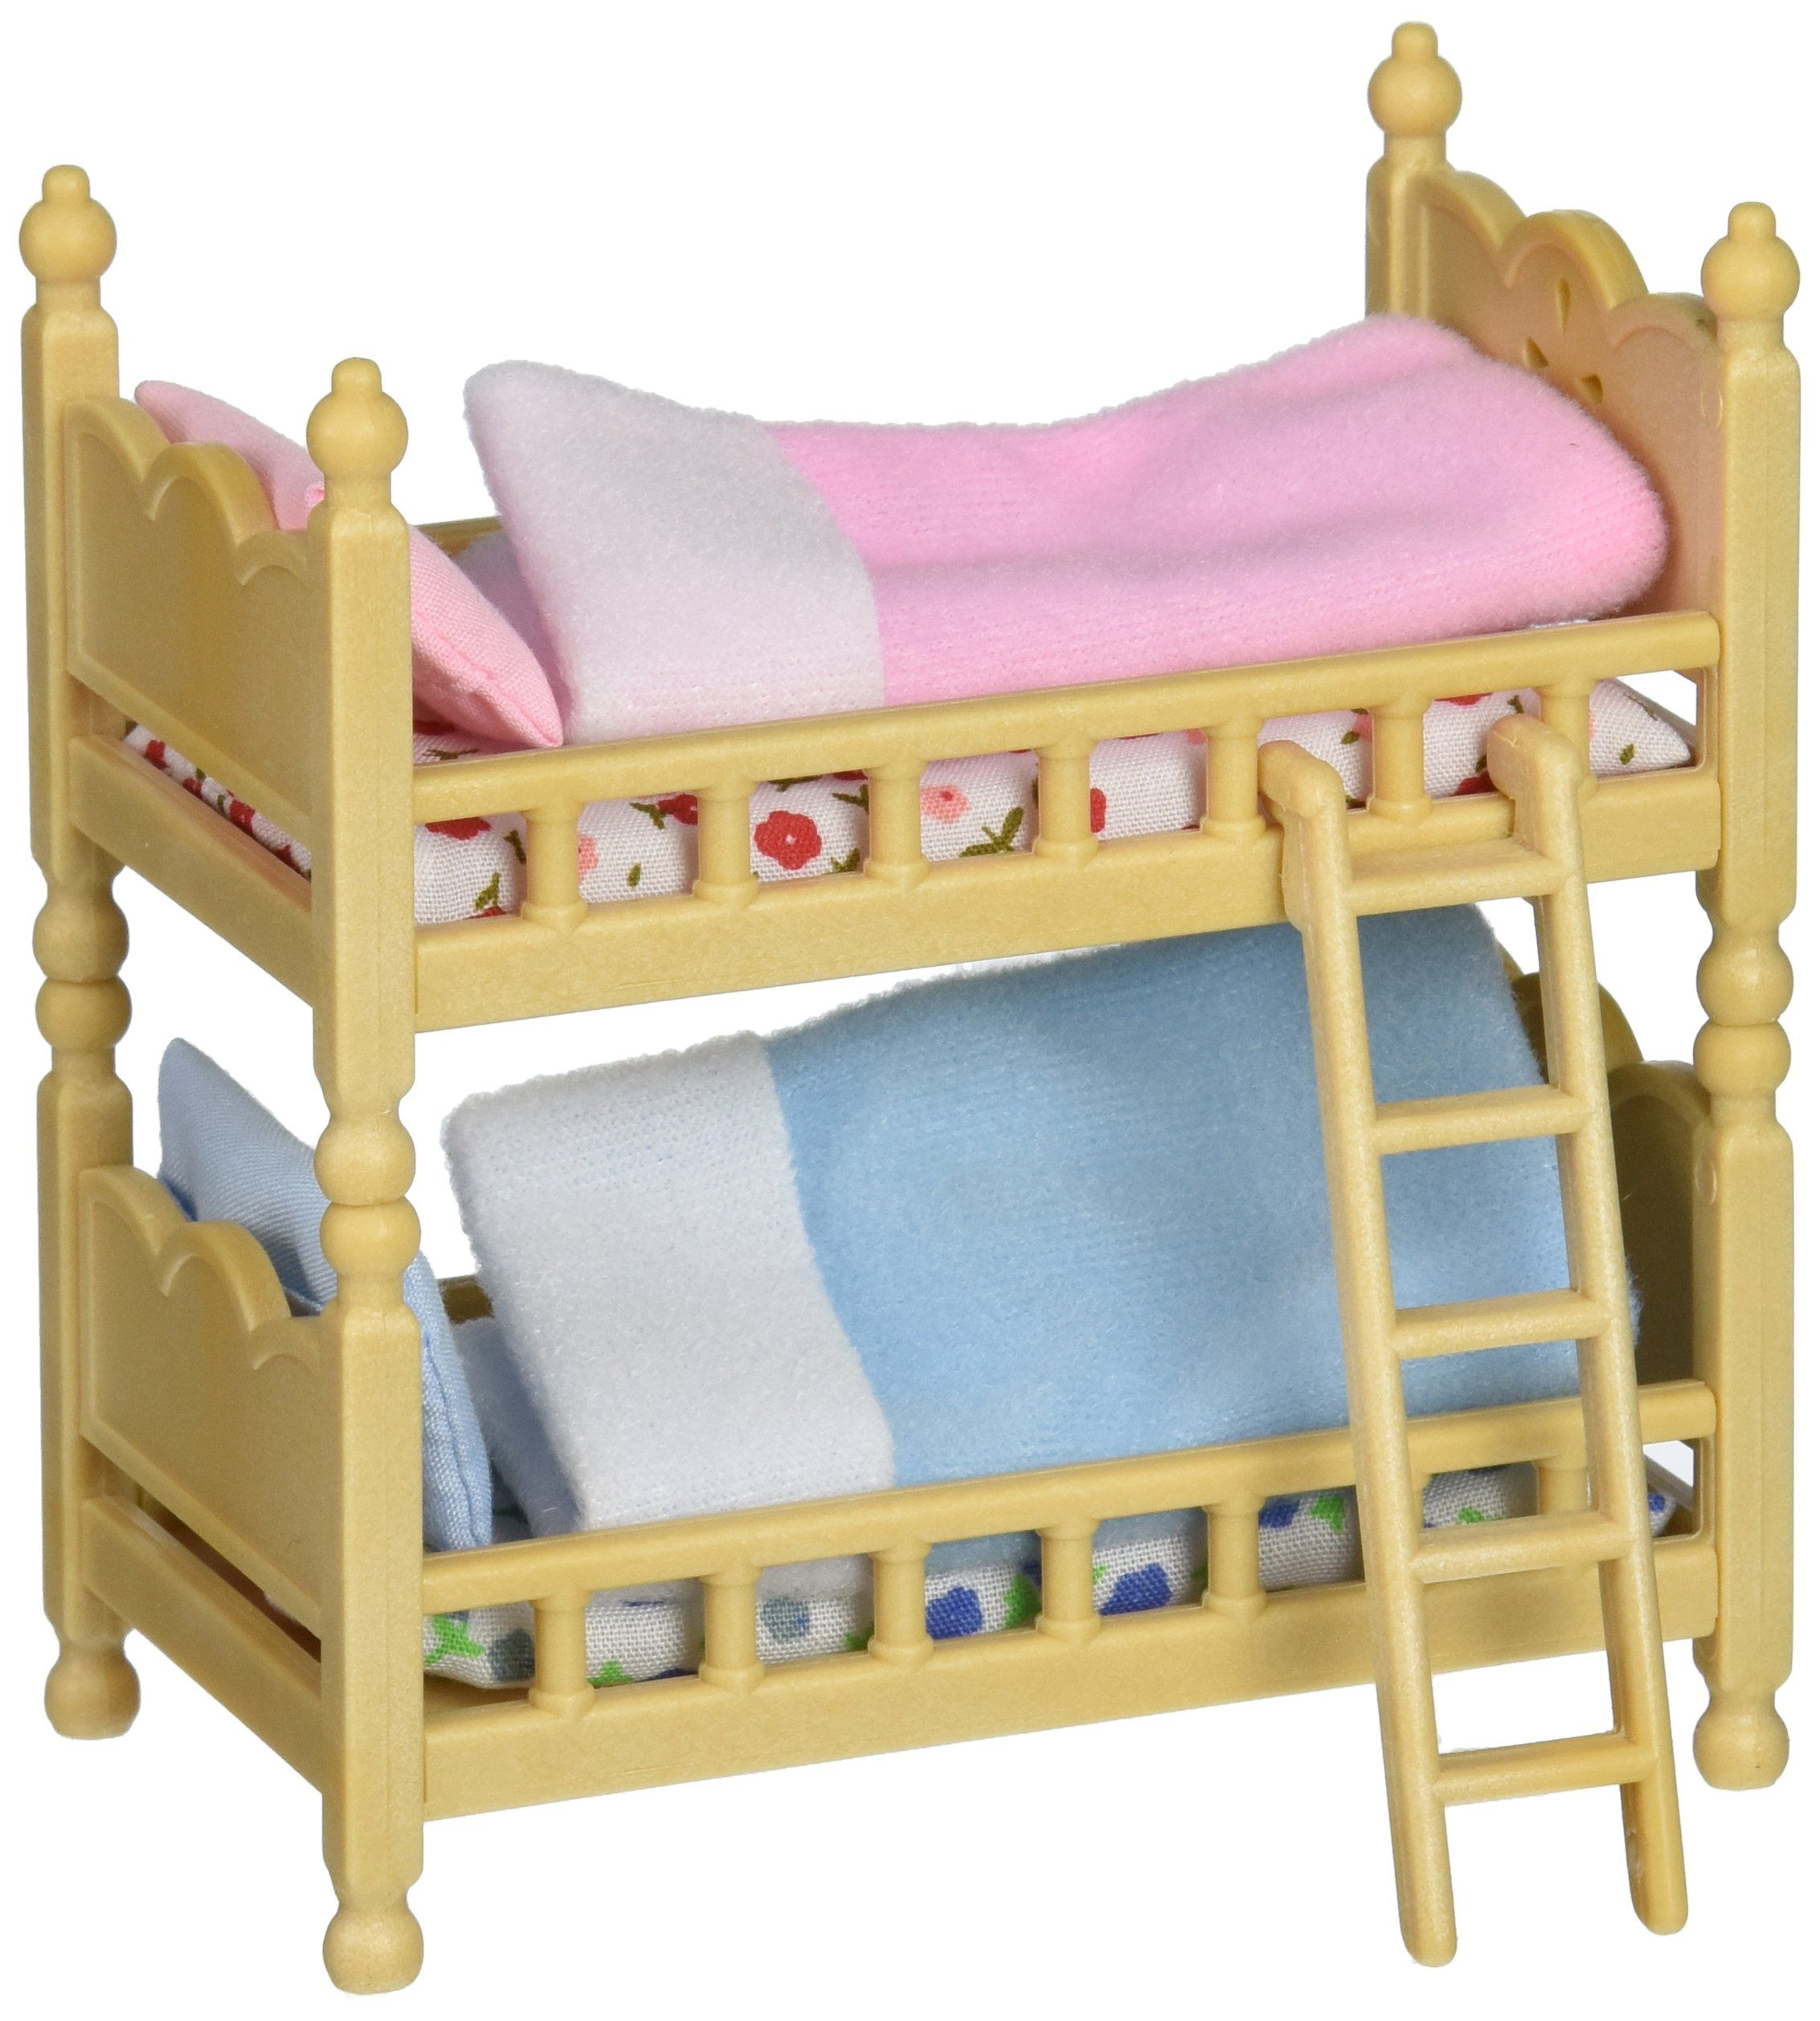 Calico Critters Bunk Beds Bed Furniture Sets For Sale Bunk